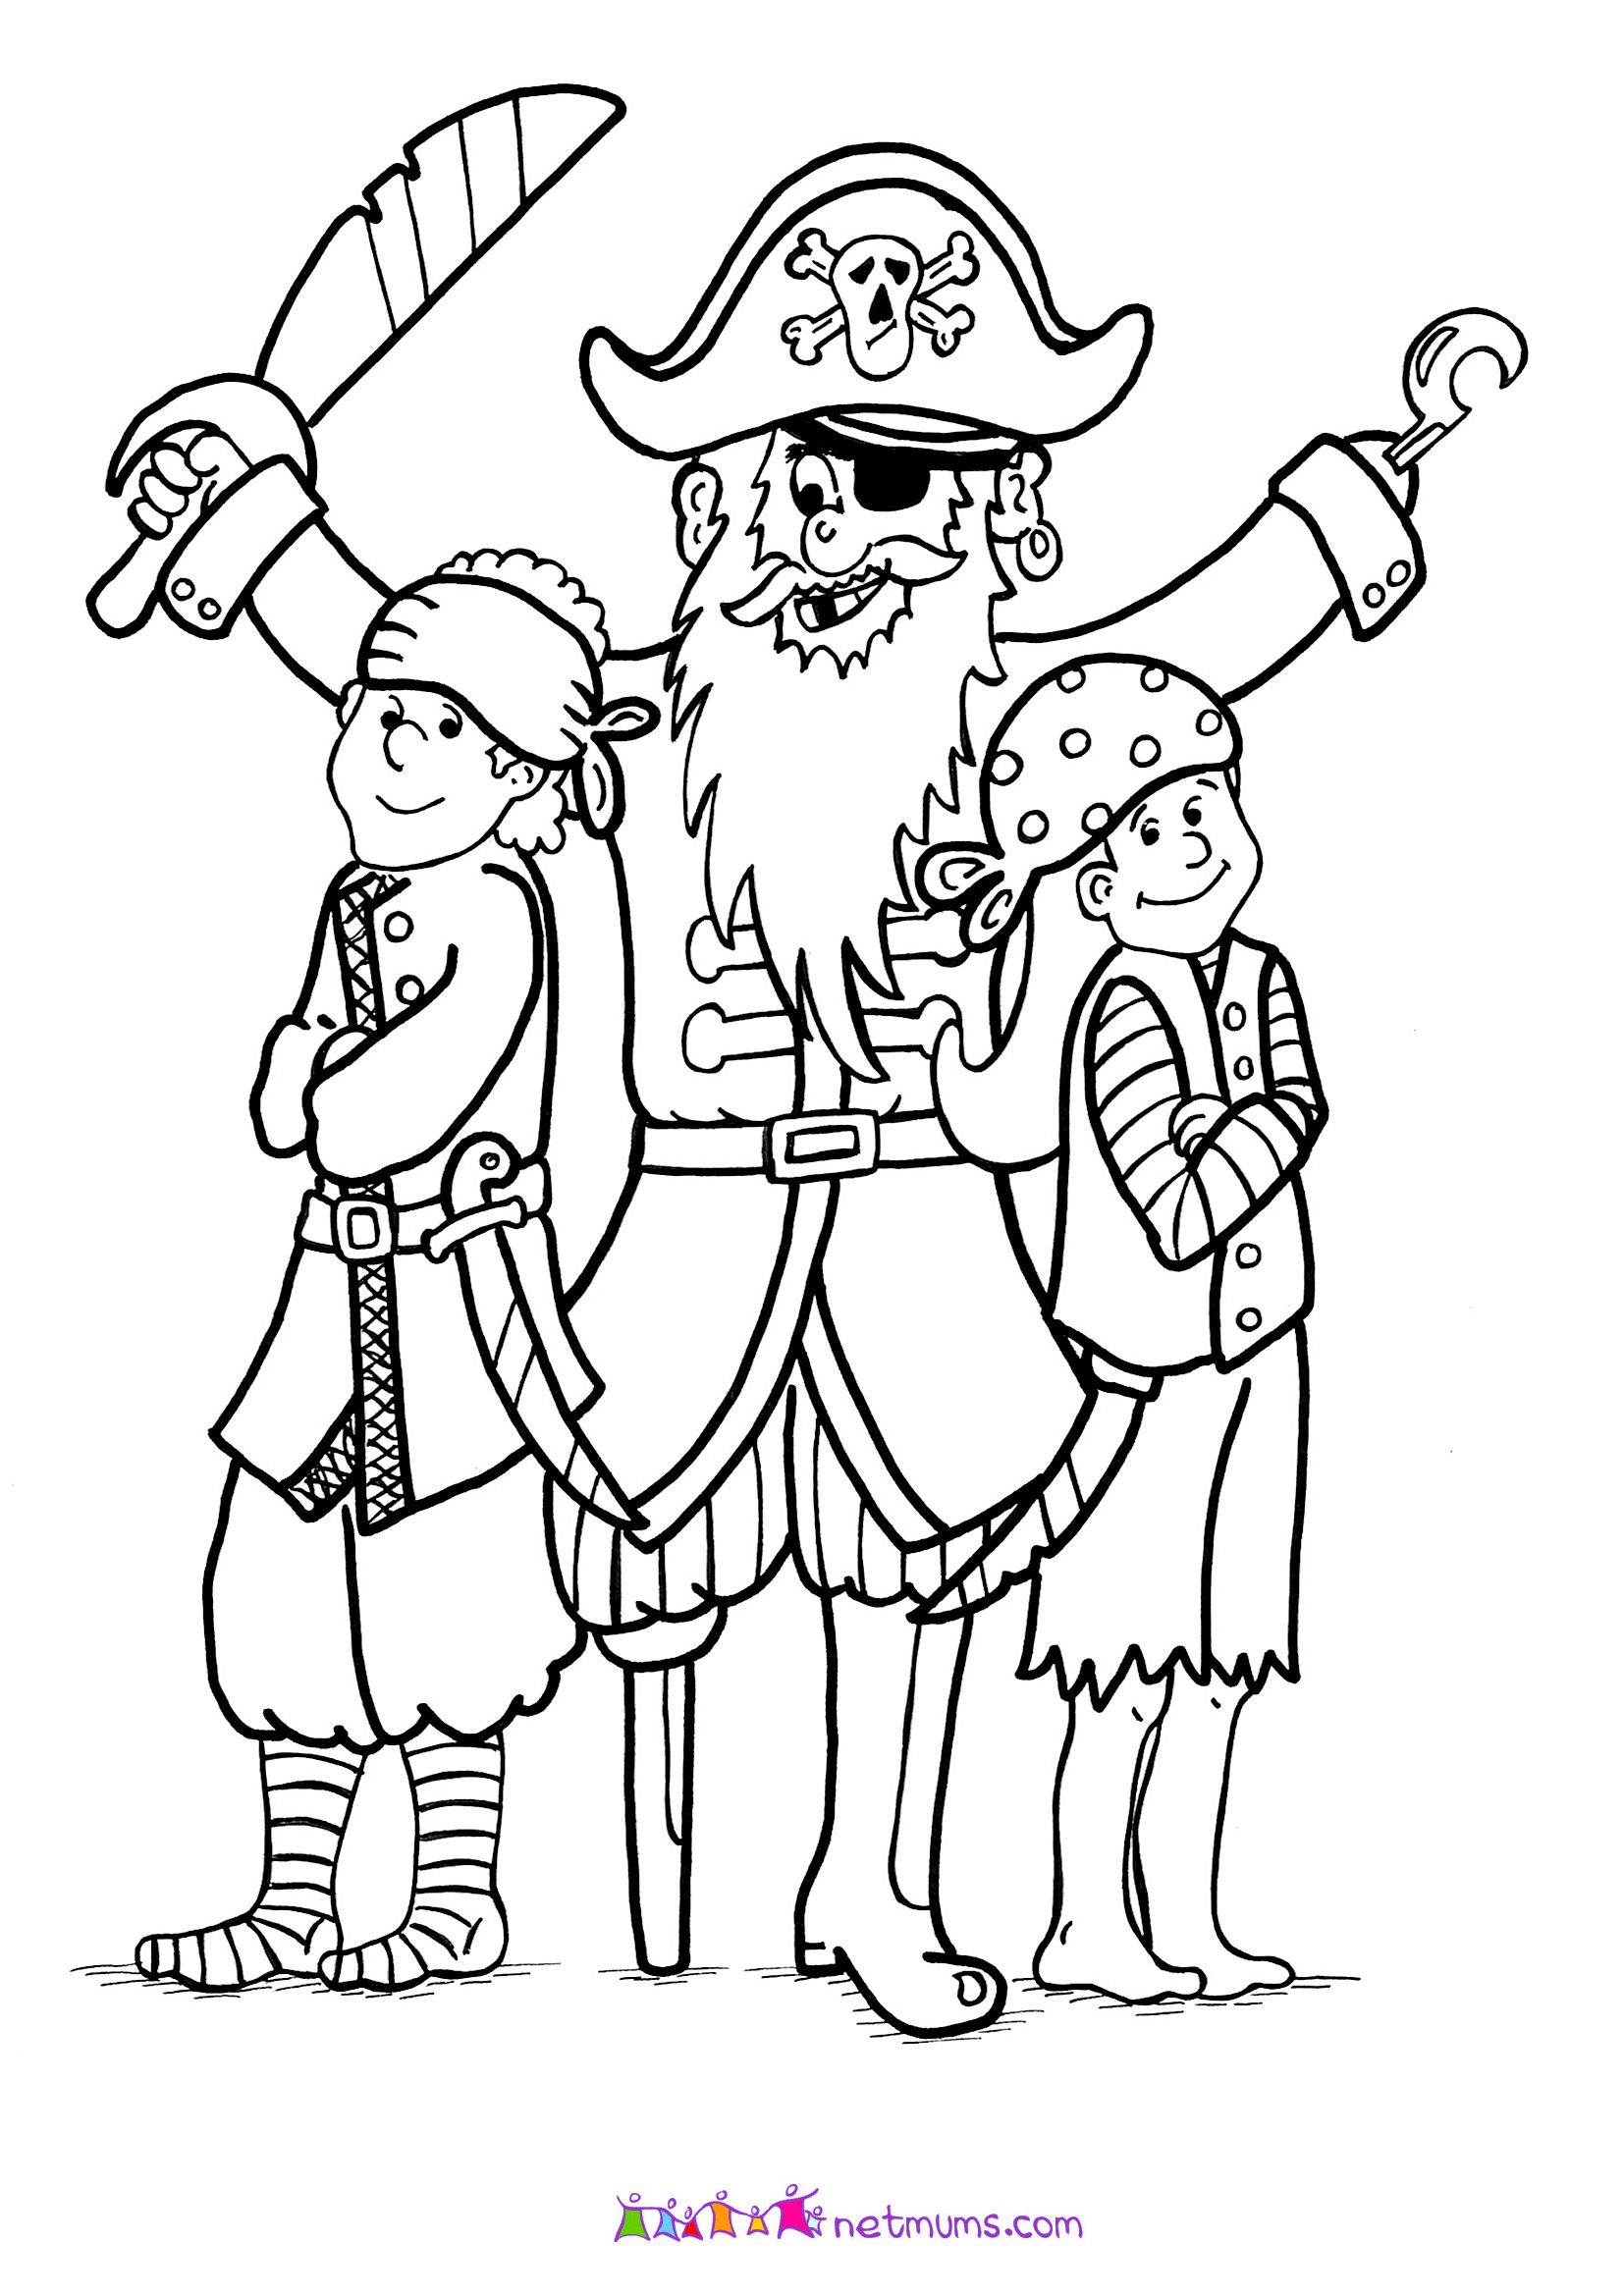 pirate coloring pages pirates of the caribbean to download pirates of the pirate coloring pages